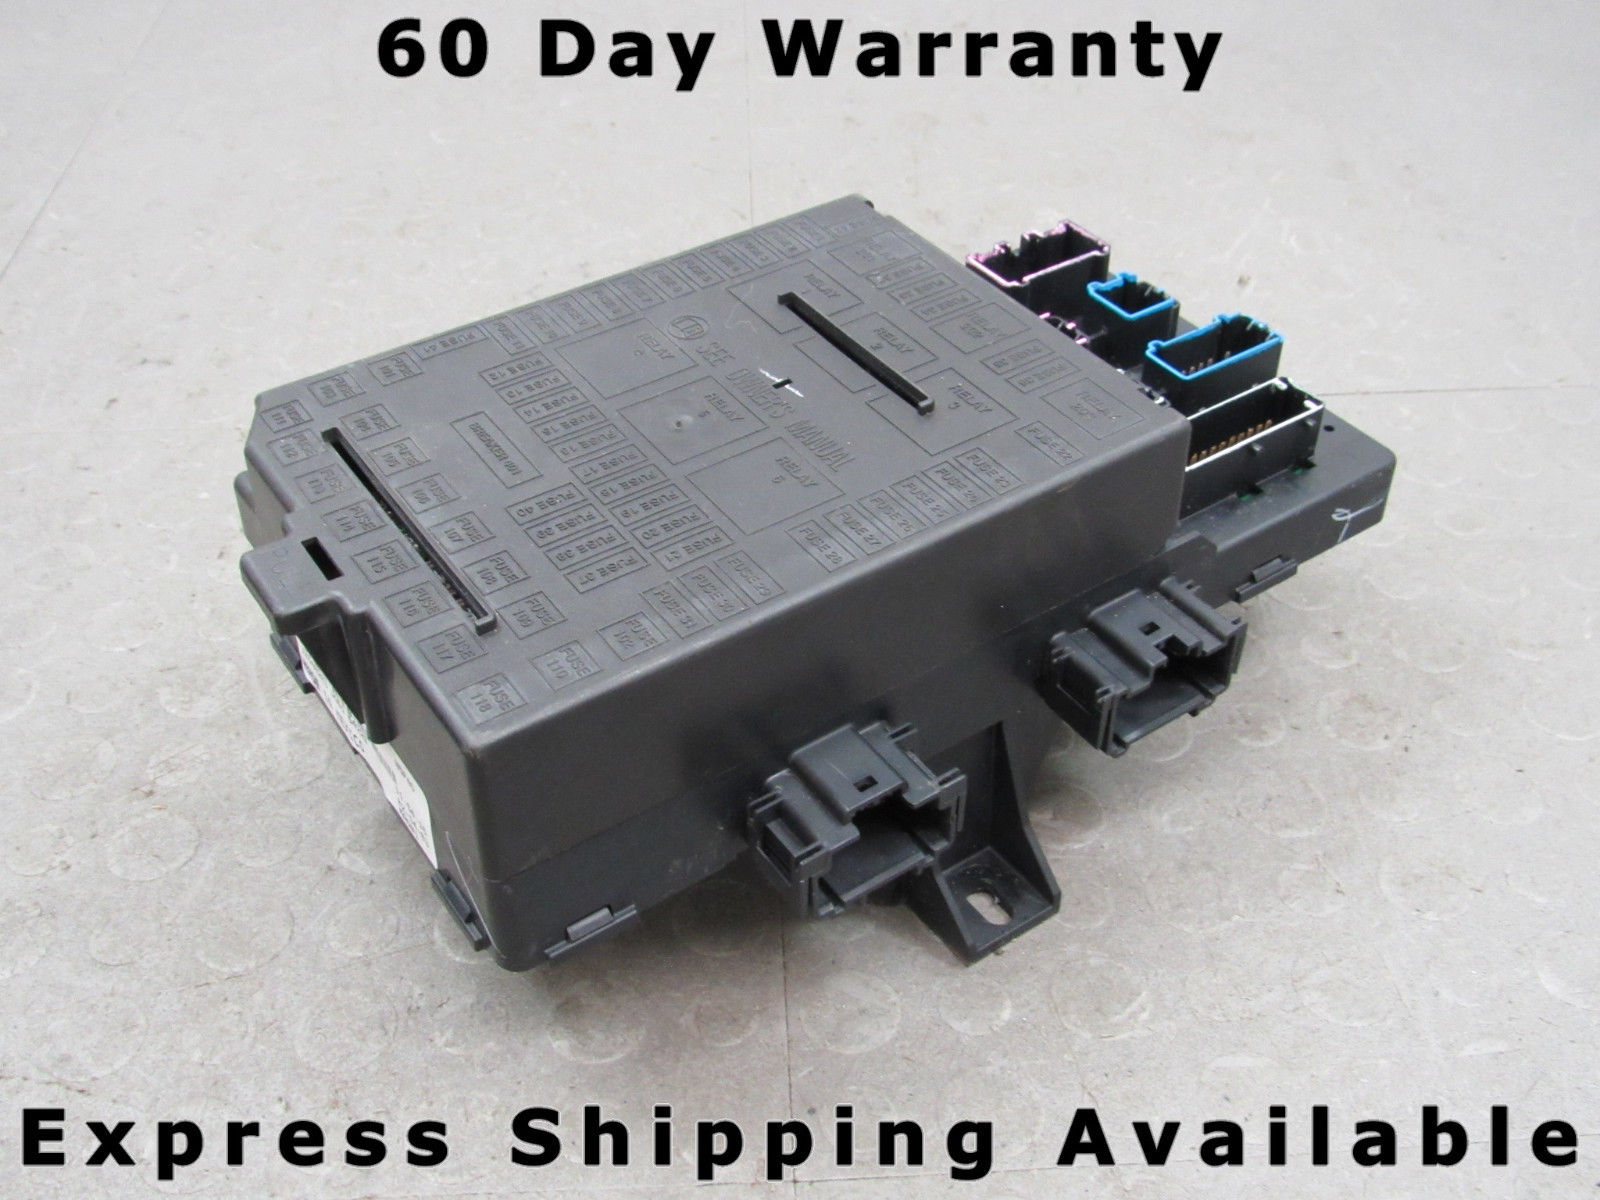 03 Expedition Navigator Interior Fuse Relay Box Block Center 3L7T-14A067-AA  AV